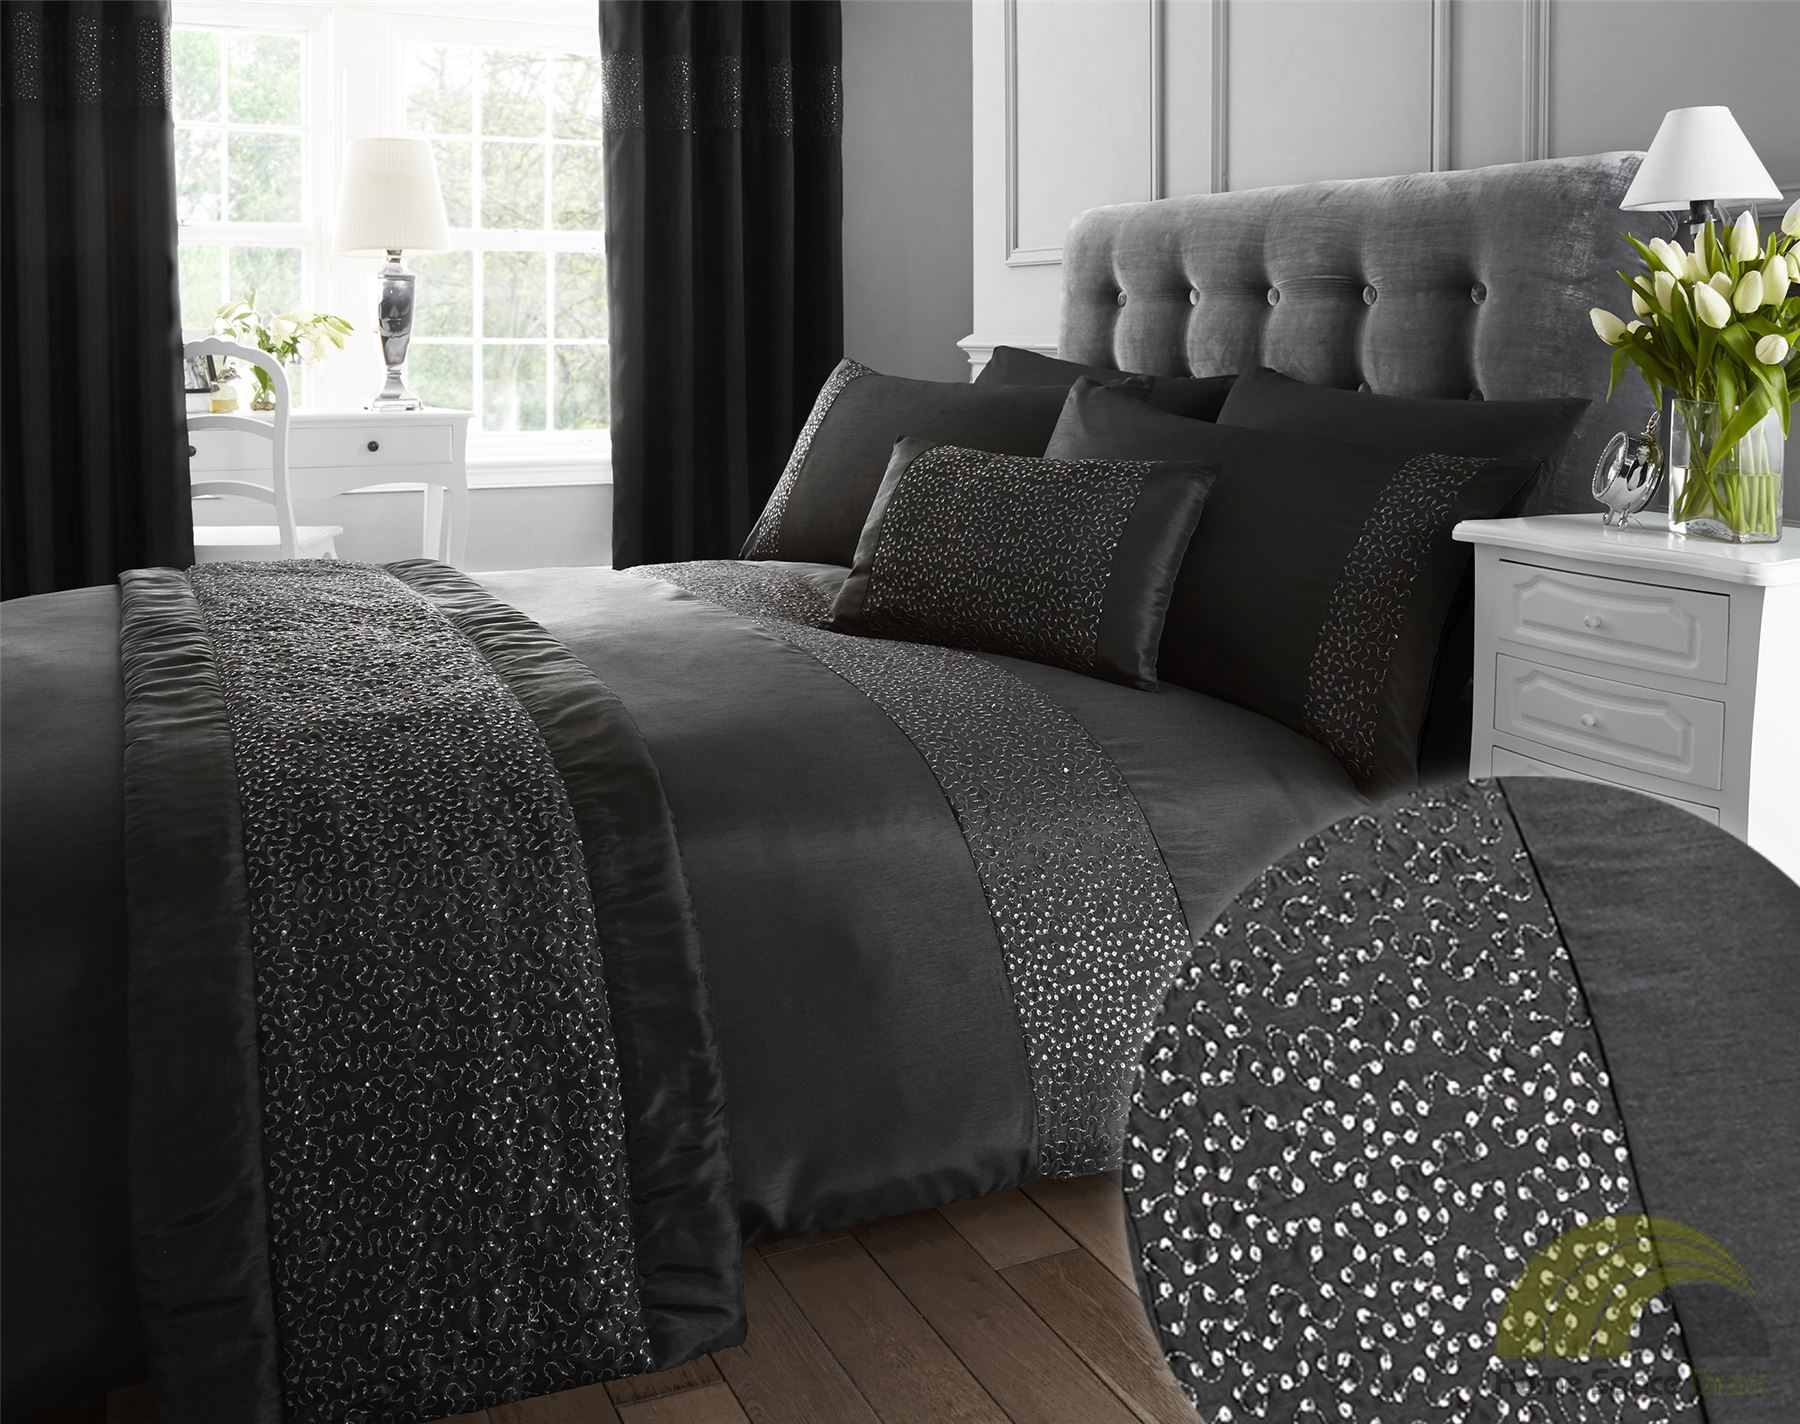 quilt duvet cover pillowcase bedding bed sets sequined cream black 3 sizes new. Black Bedroom Furniture Sets. Home Design Ideas